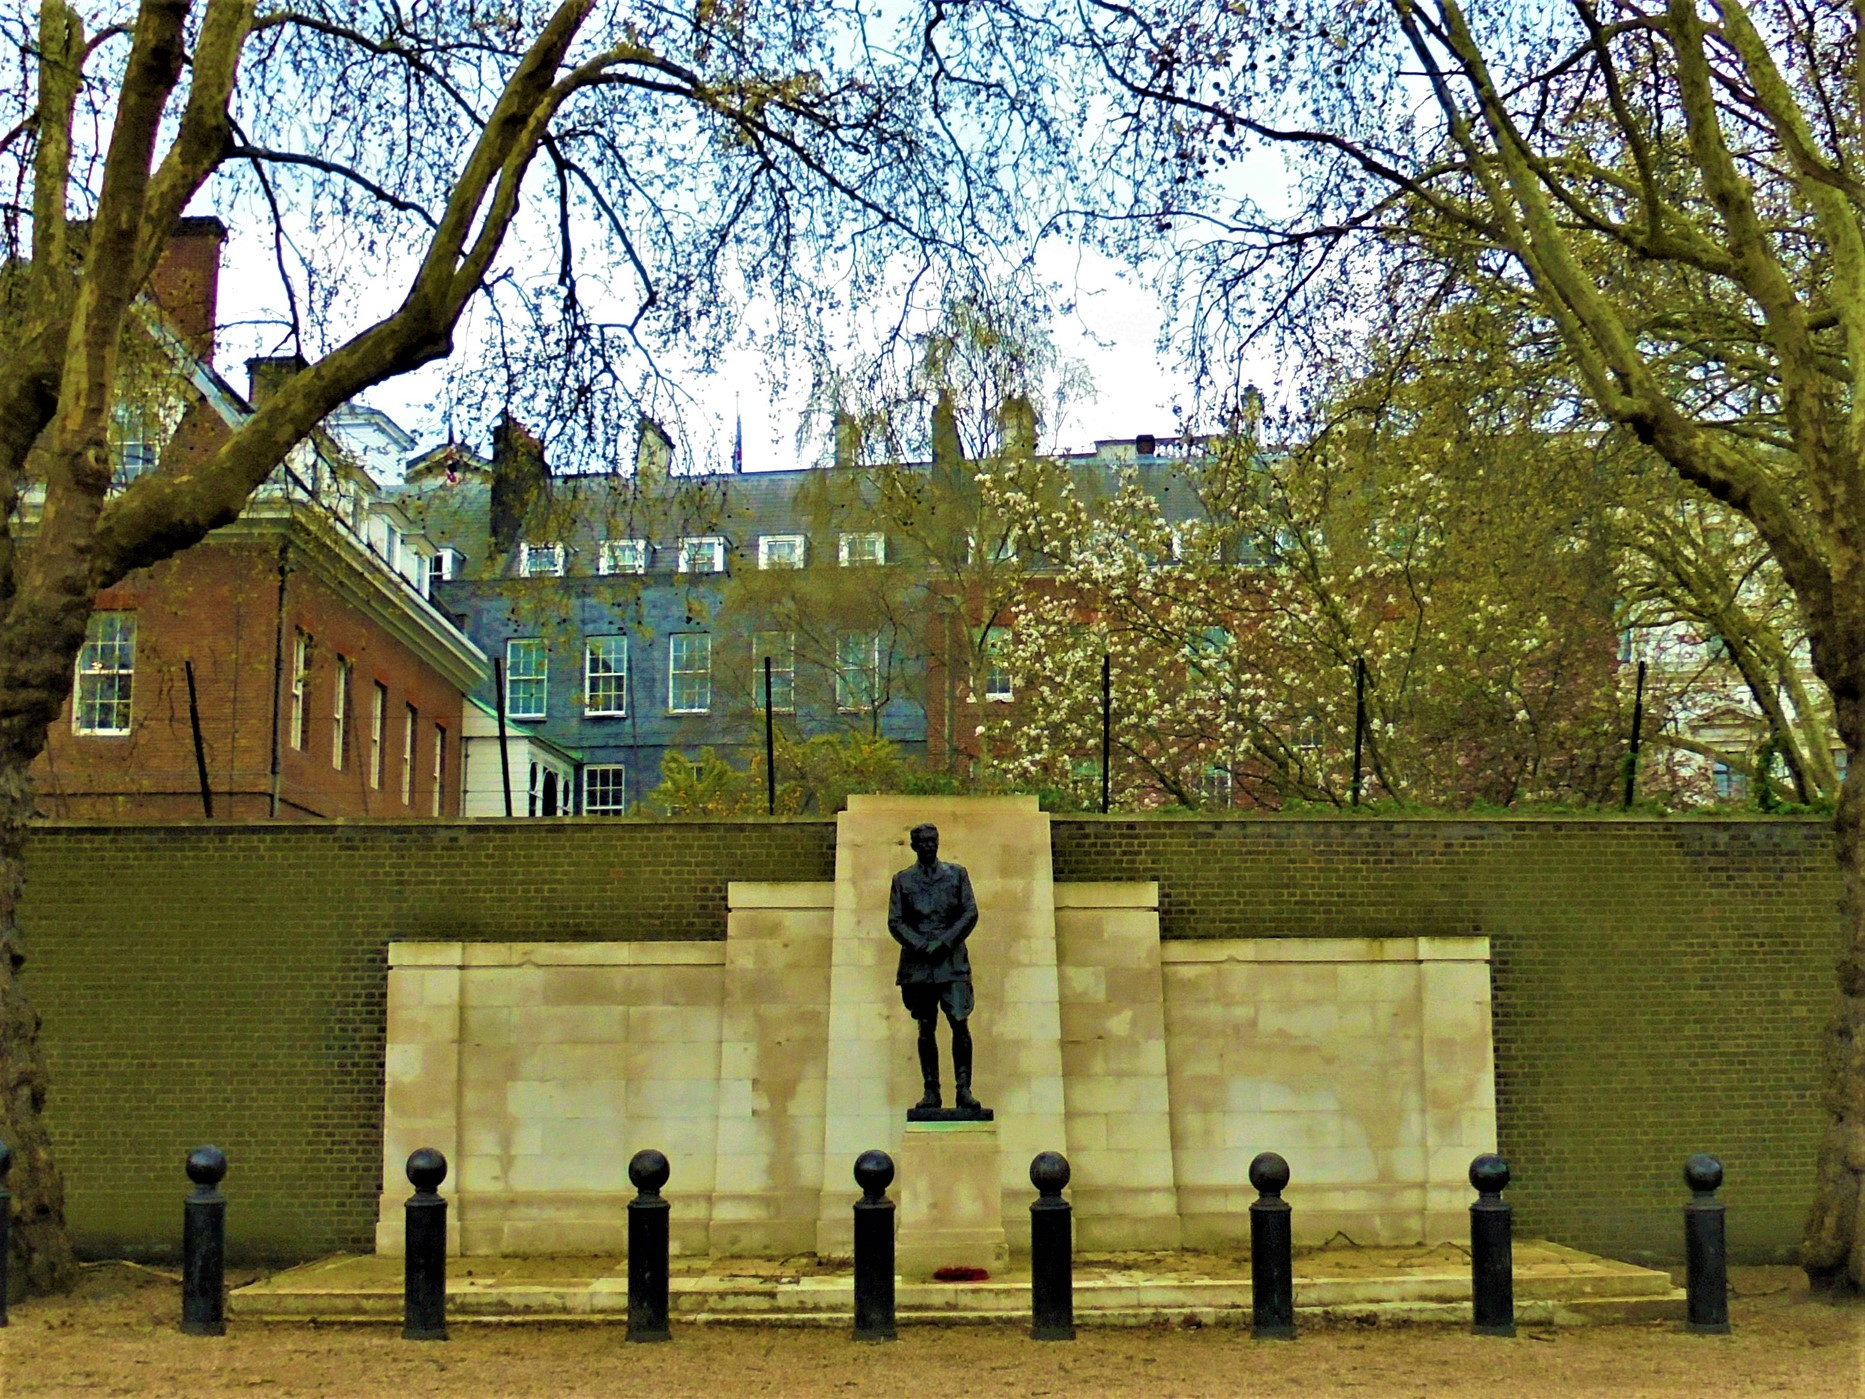 Horse Guards Parade, Kitchener Statue, Whitehall Pl, Westminster, London